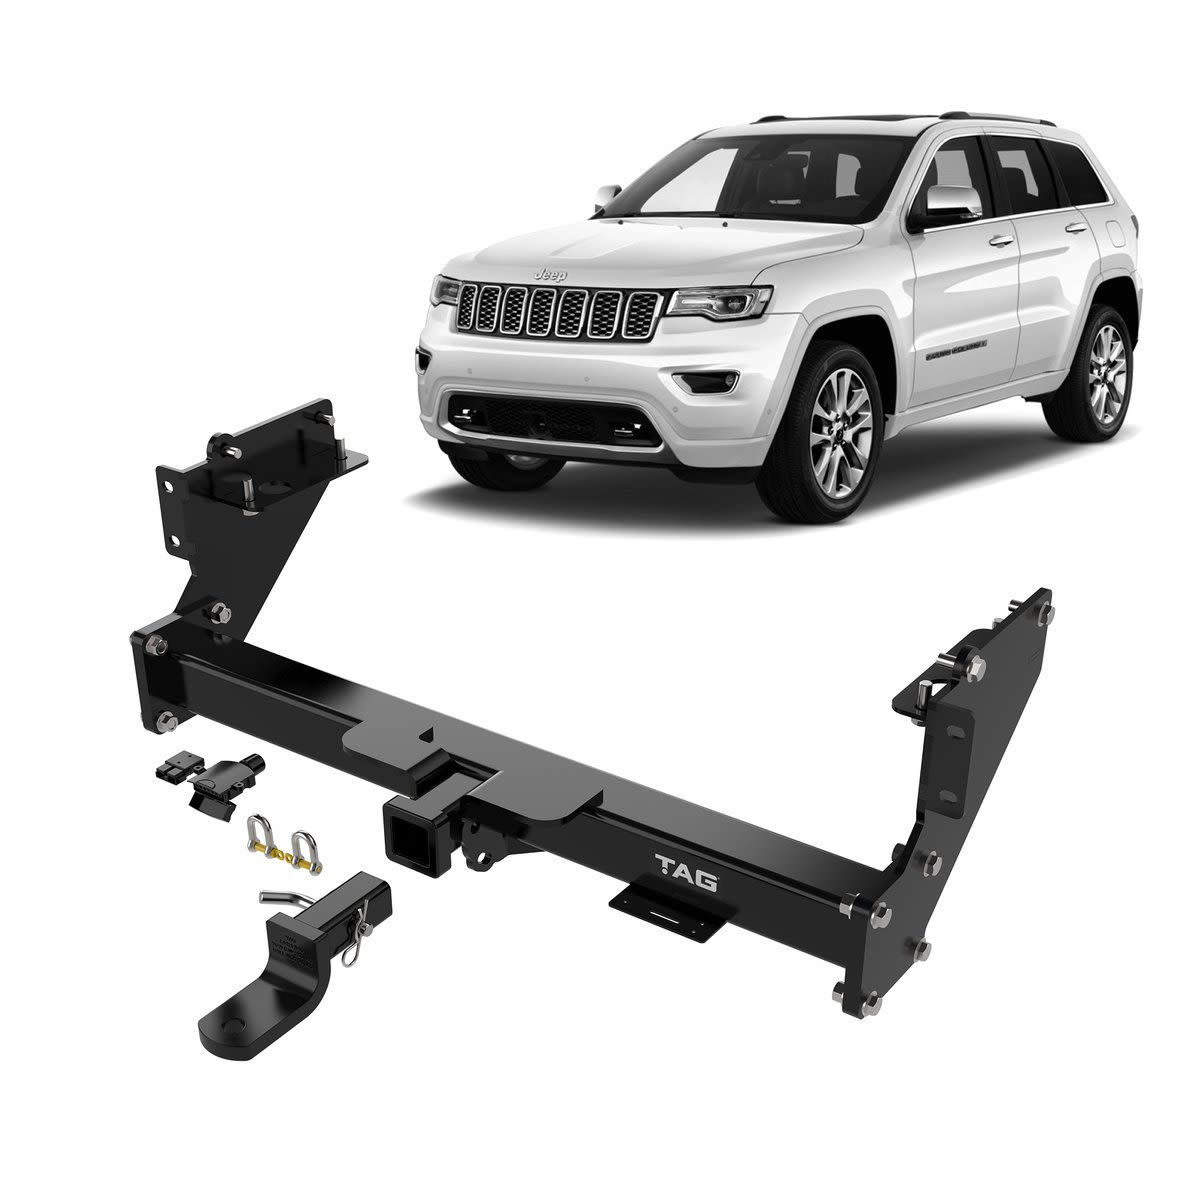 TAG Heavy Duty Towbar to suit Jeep Grand Cherokee (02/2011 - 06/2013)